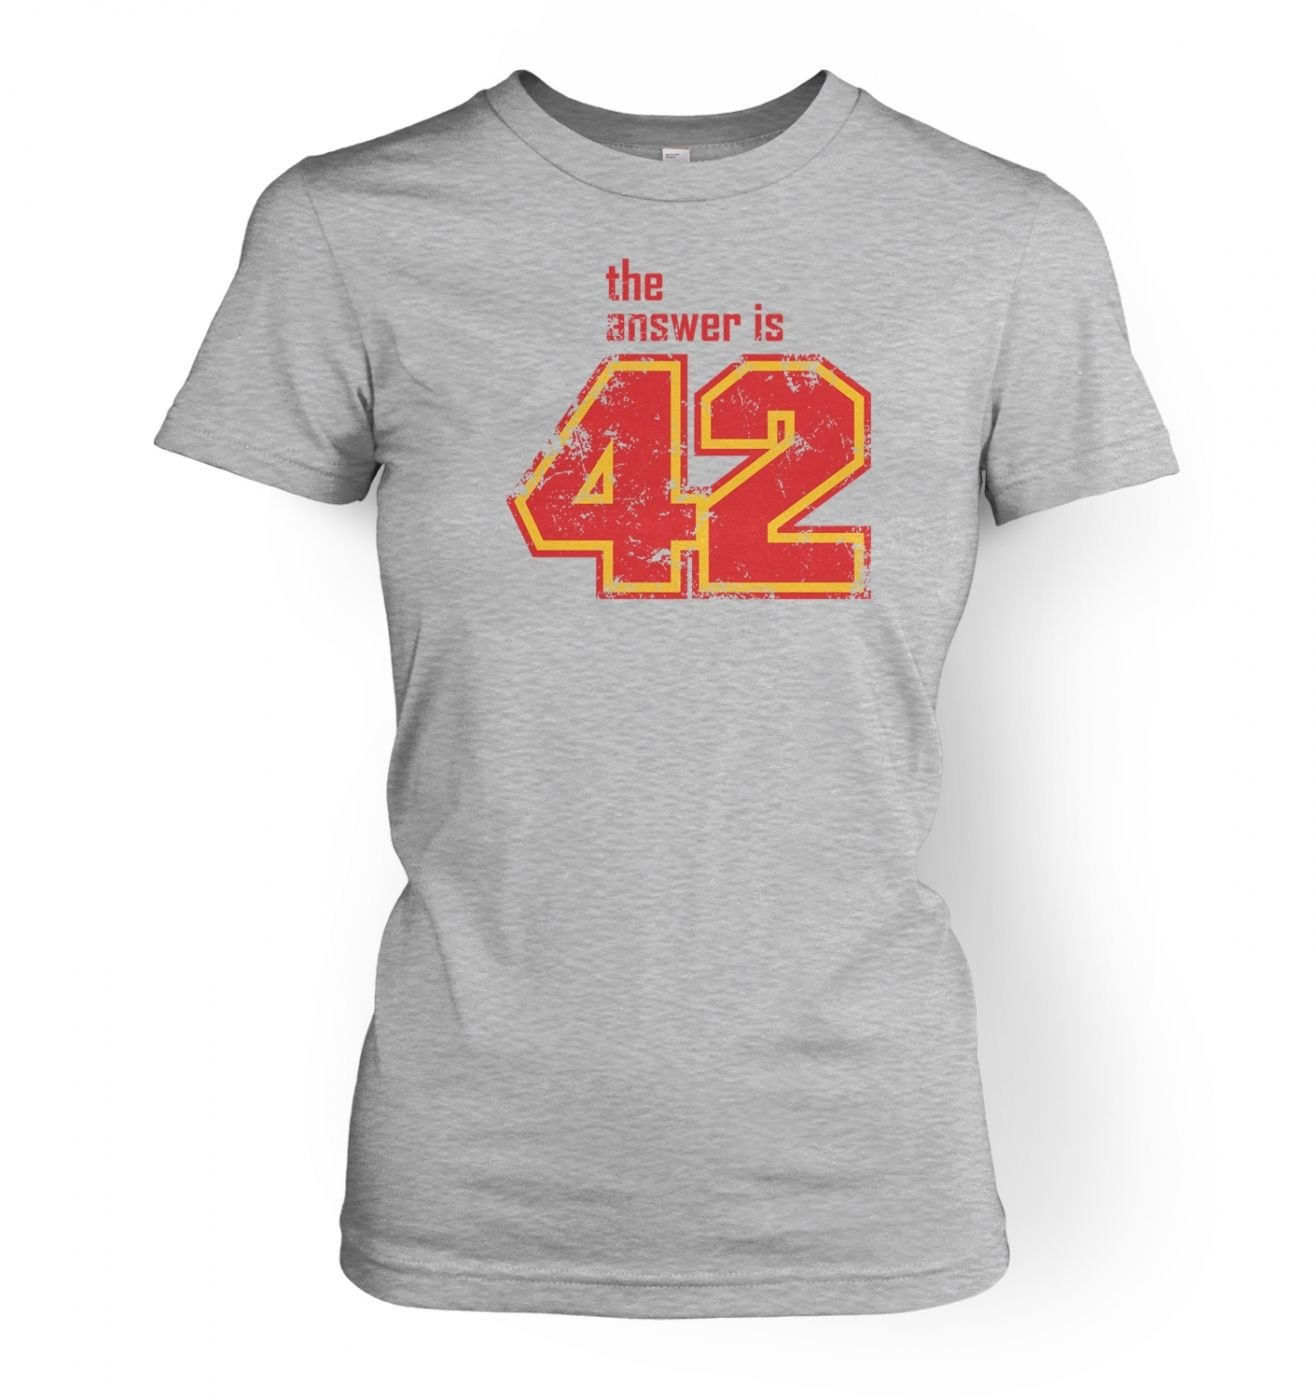 The Answer Is 42 women's fitted t-shirt